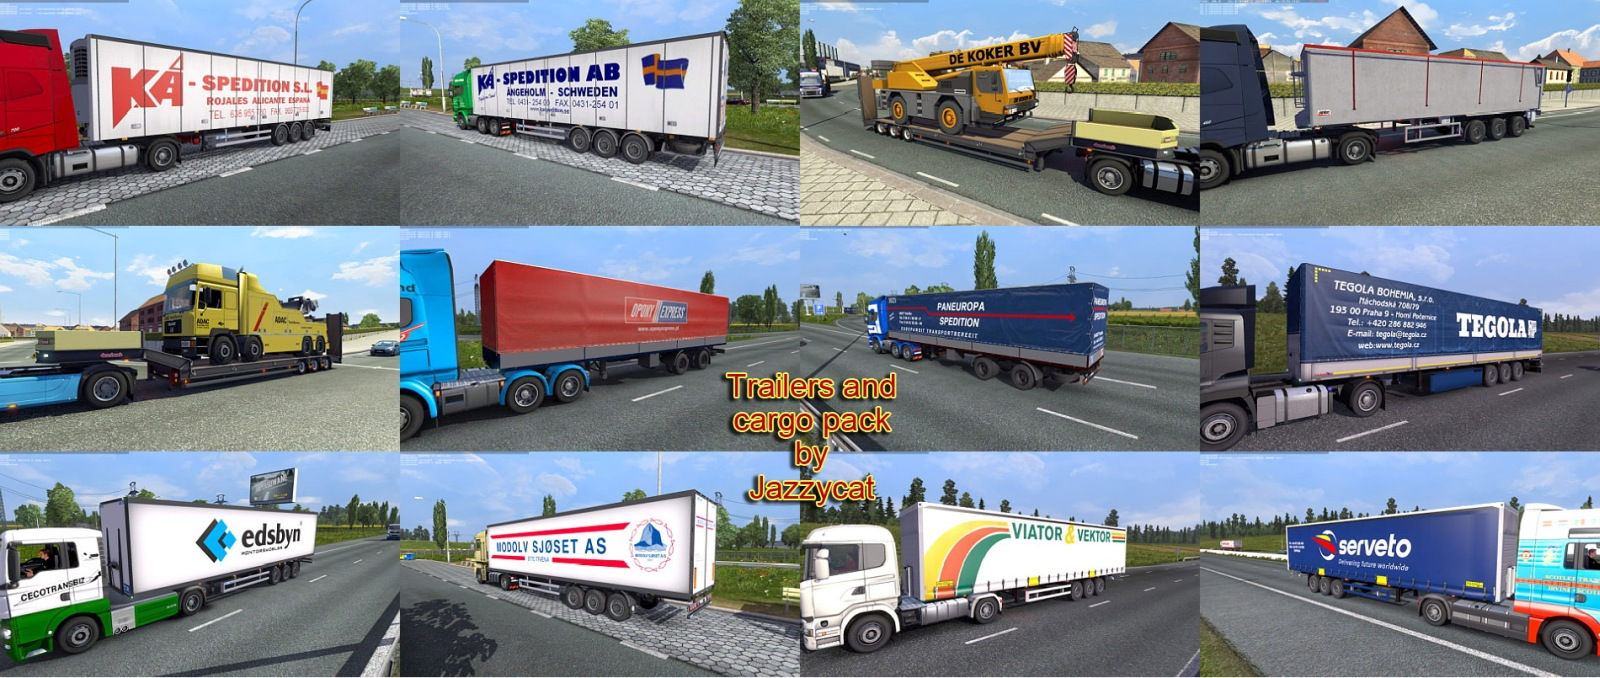 Trailers and Cargo Pack mod 2.7